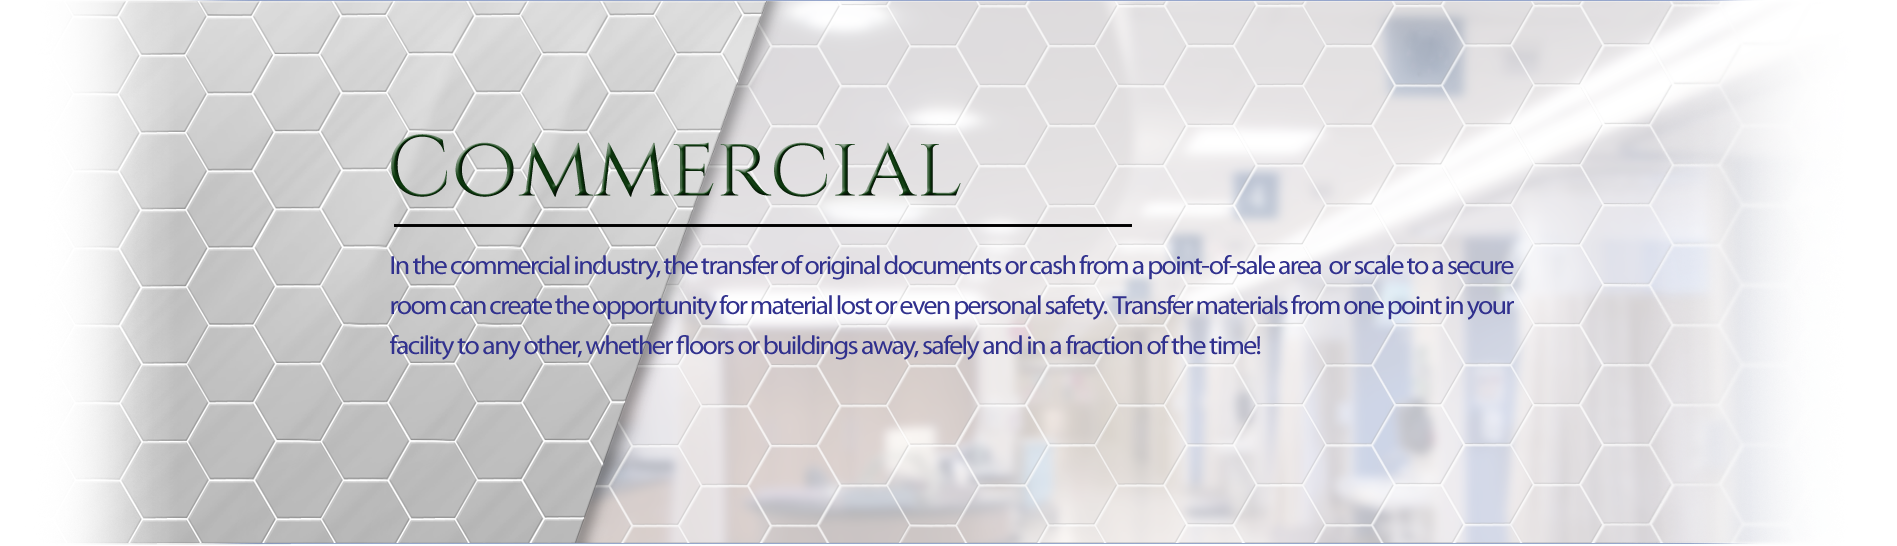 In the commercial industry, the transfer of original documents or cash from a point-of-sale area or scale to a secure room can create the opportunity for material lost or even personal safety. transfer materials from one point in your facility to any othe, whether floors or buildings away, safely and in a fraction of the time!